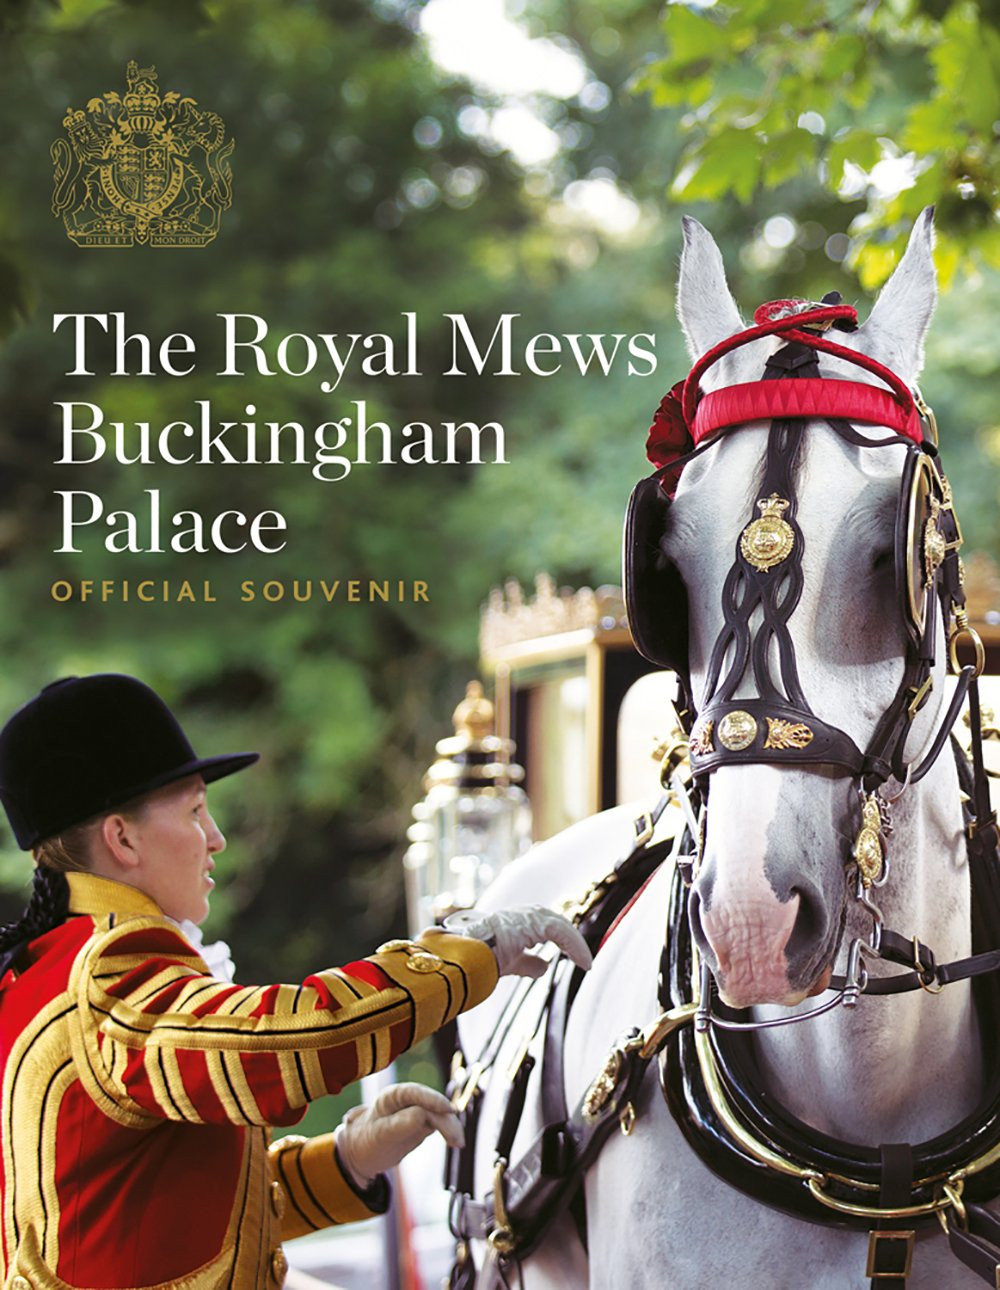 The Royal Mews Buckingham Palace - Official guidebook at the Book Depository